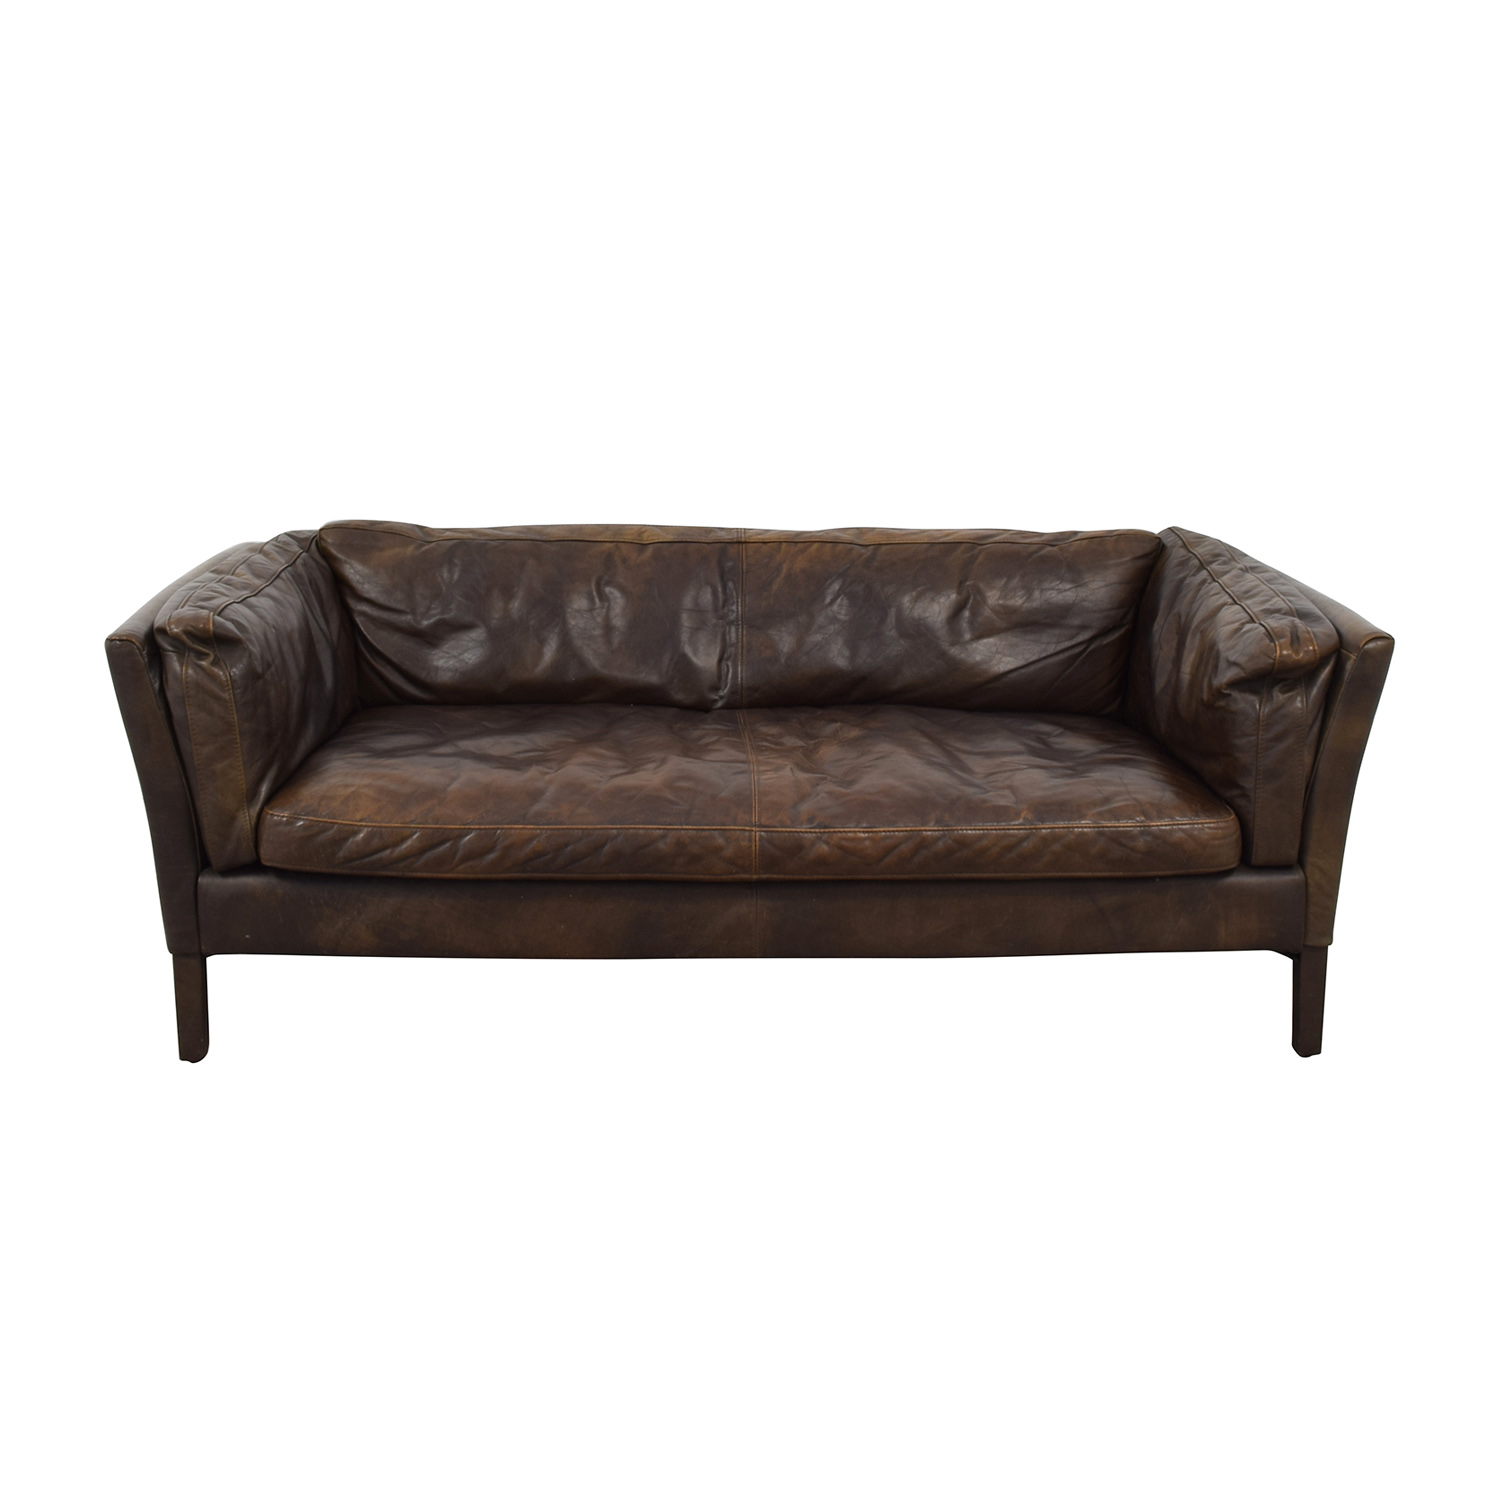 Restoration Hardware Restoration Hardware Sorensen Brown Single Cushion Sofa price